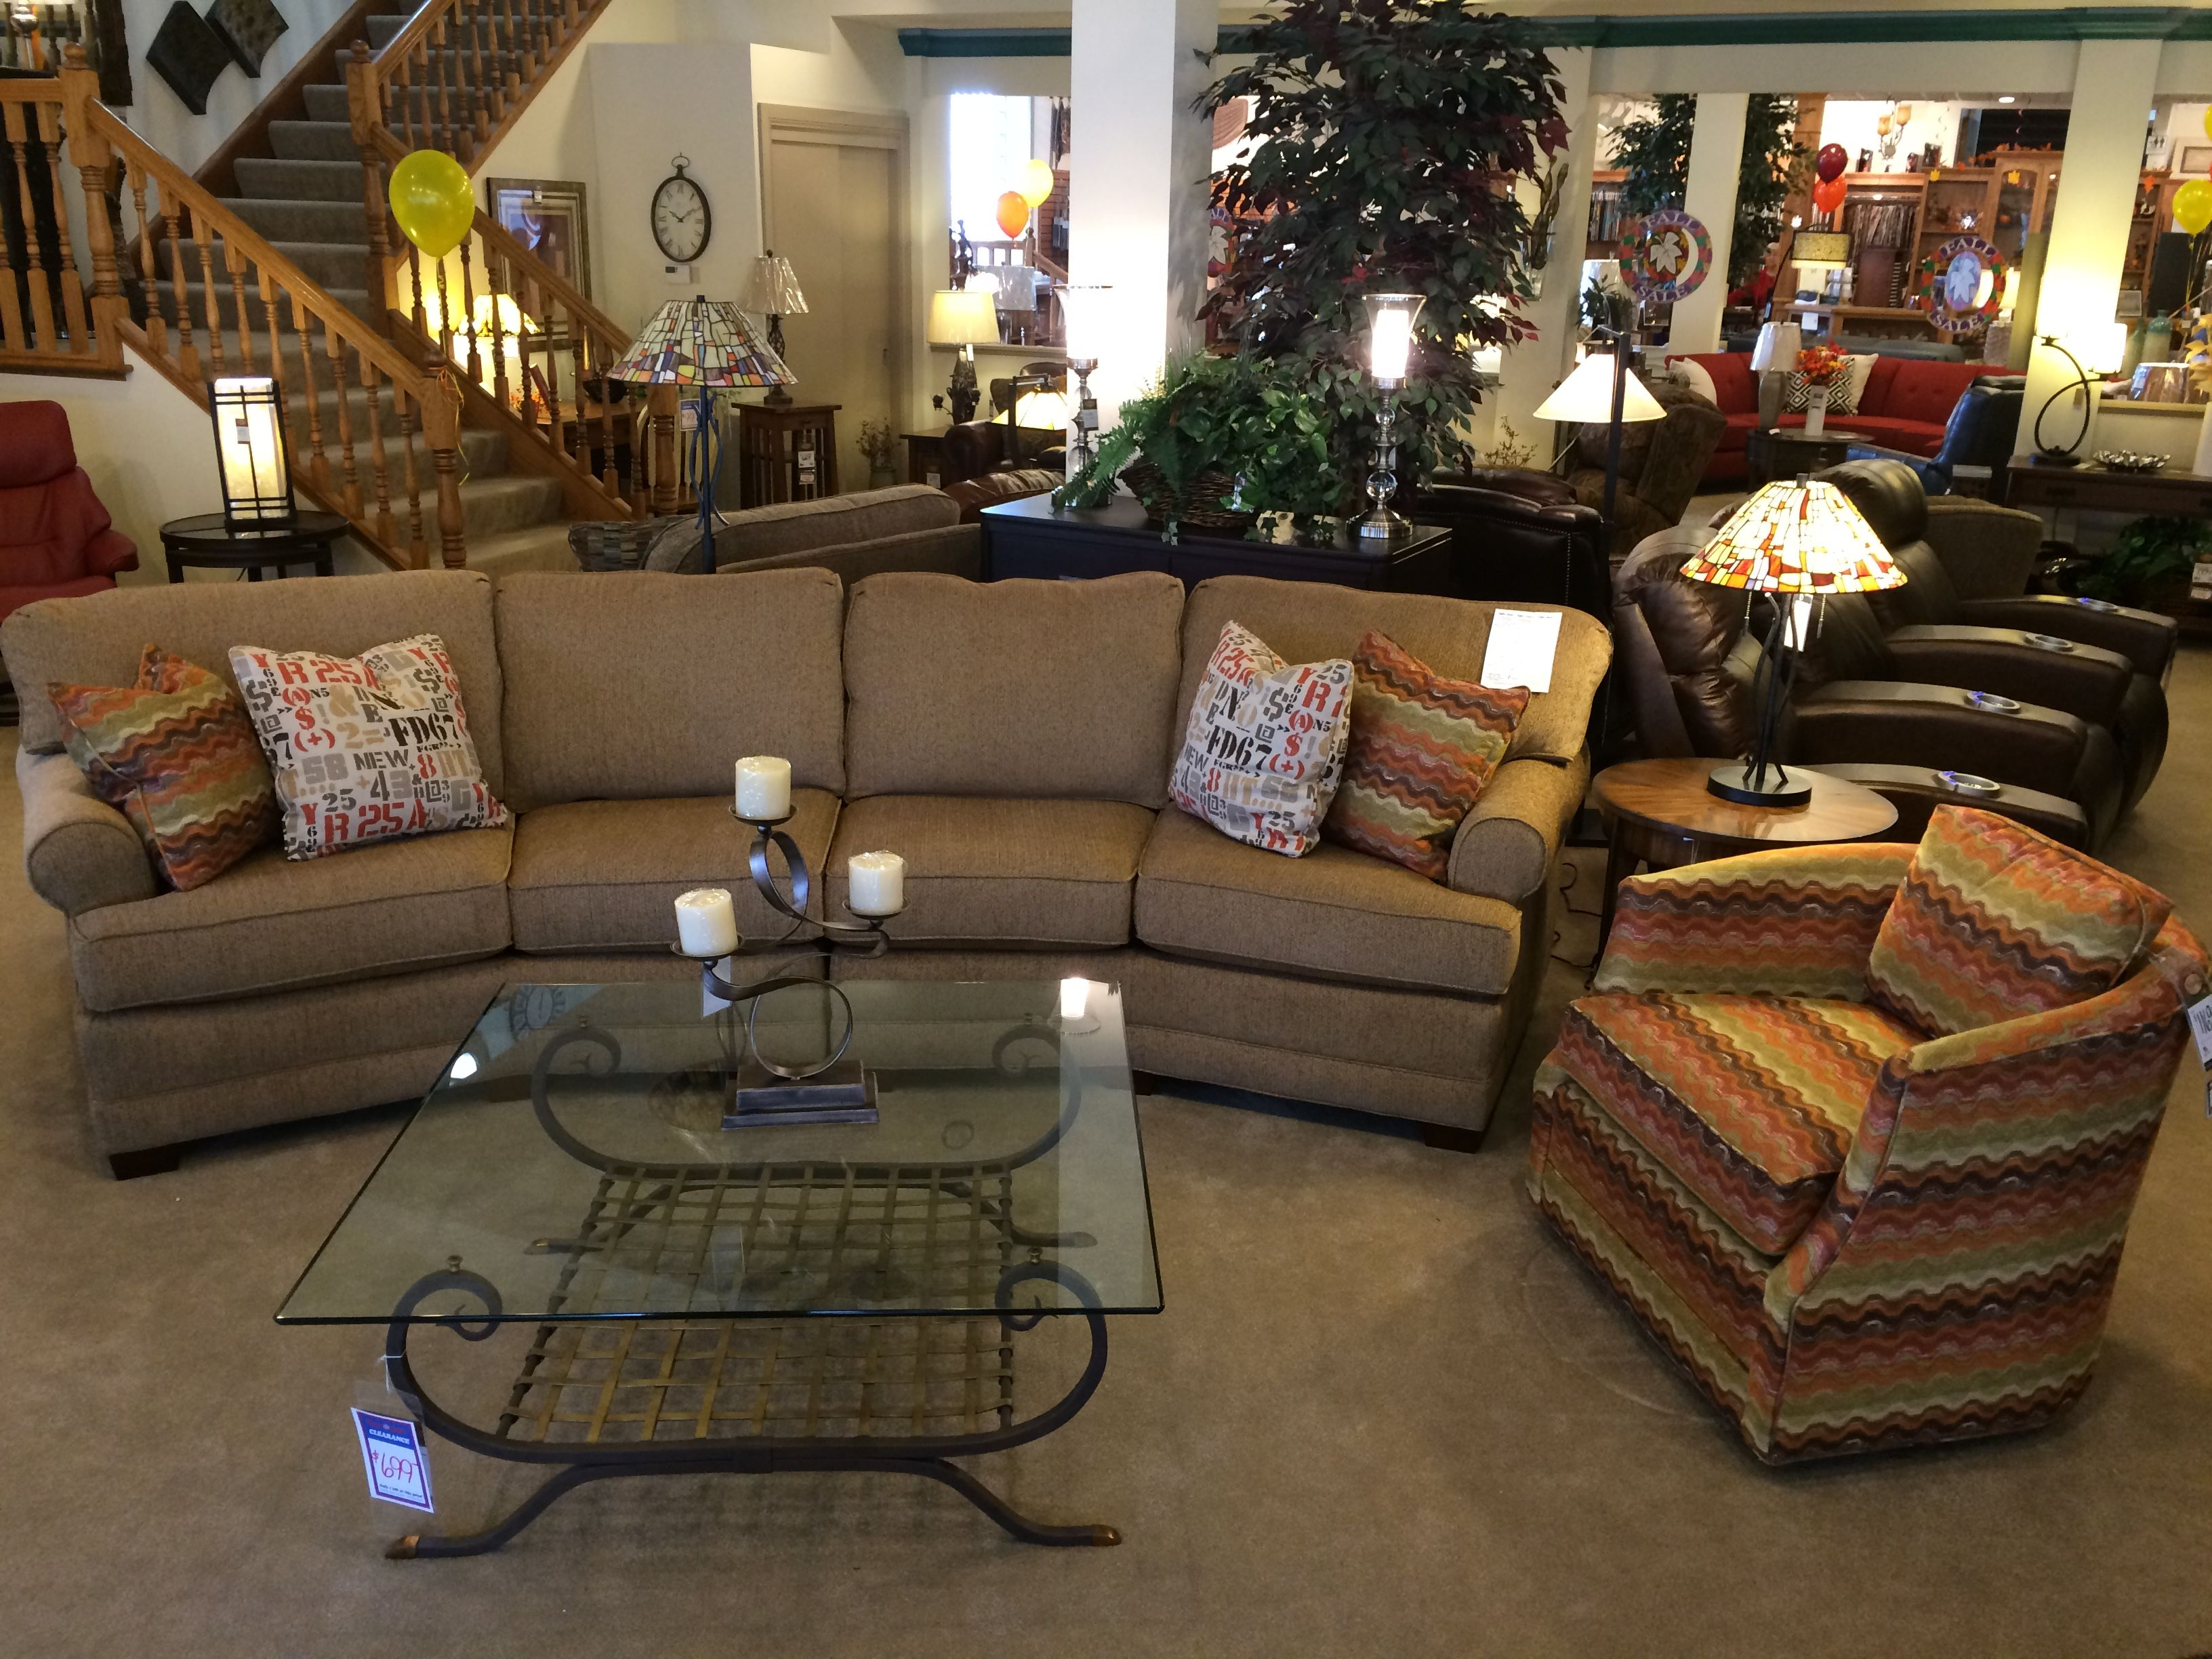 Large Conversation Sofa And Patterned Swivel Chair From Temple Furniture Temple Furniture Furniture Conversation Sofa